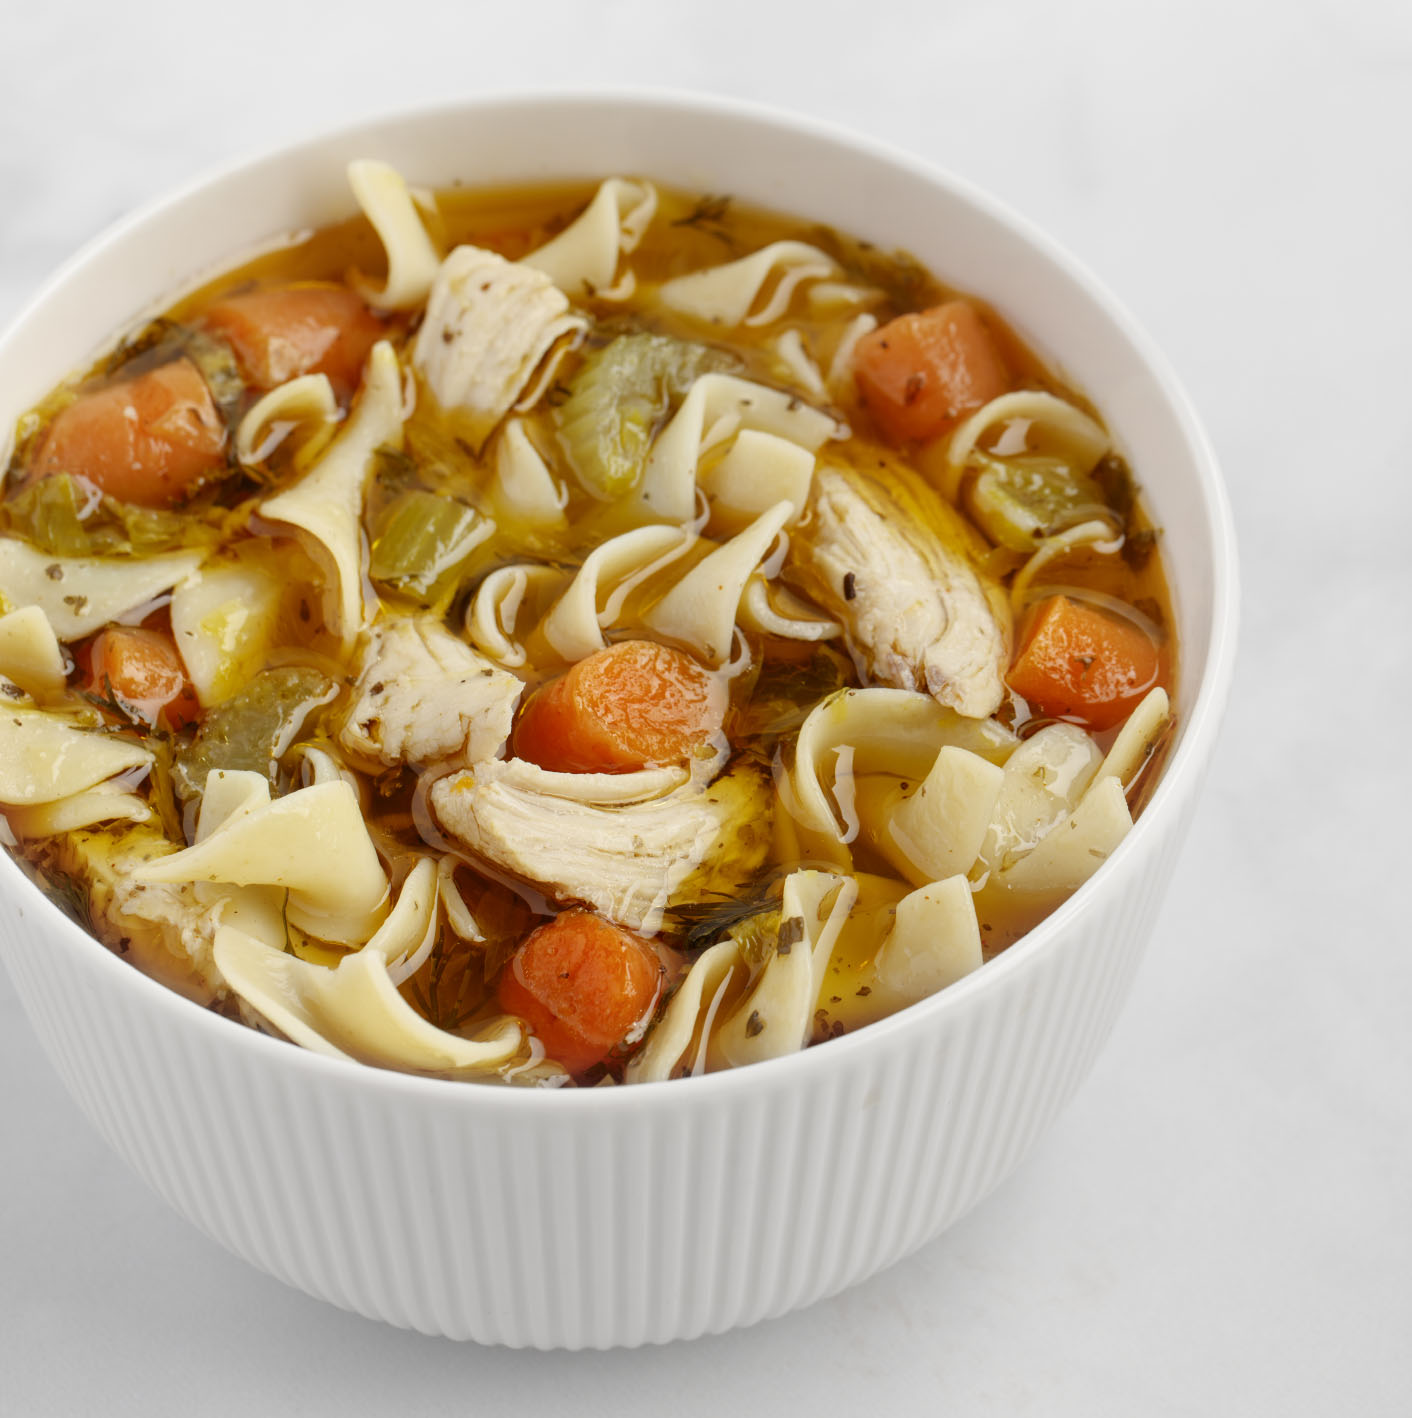 instant pot recipes, instant pot chicken noodle soup, chicken noodle soup